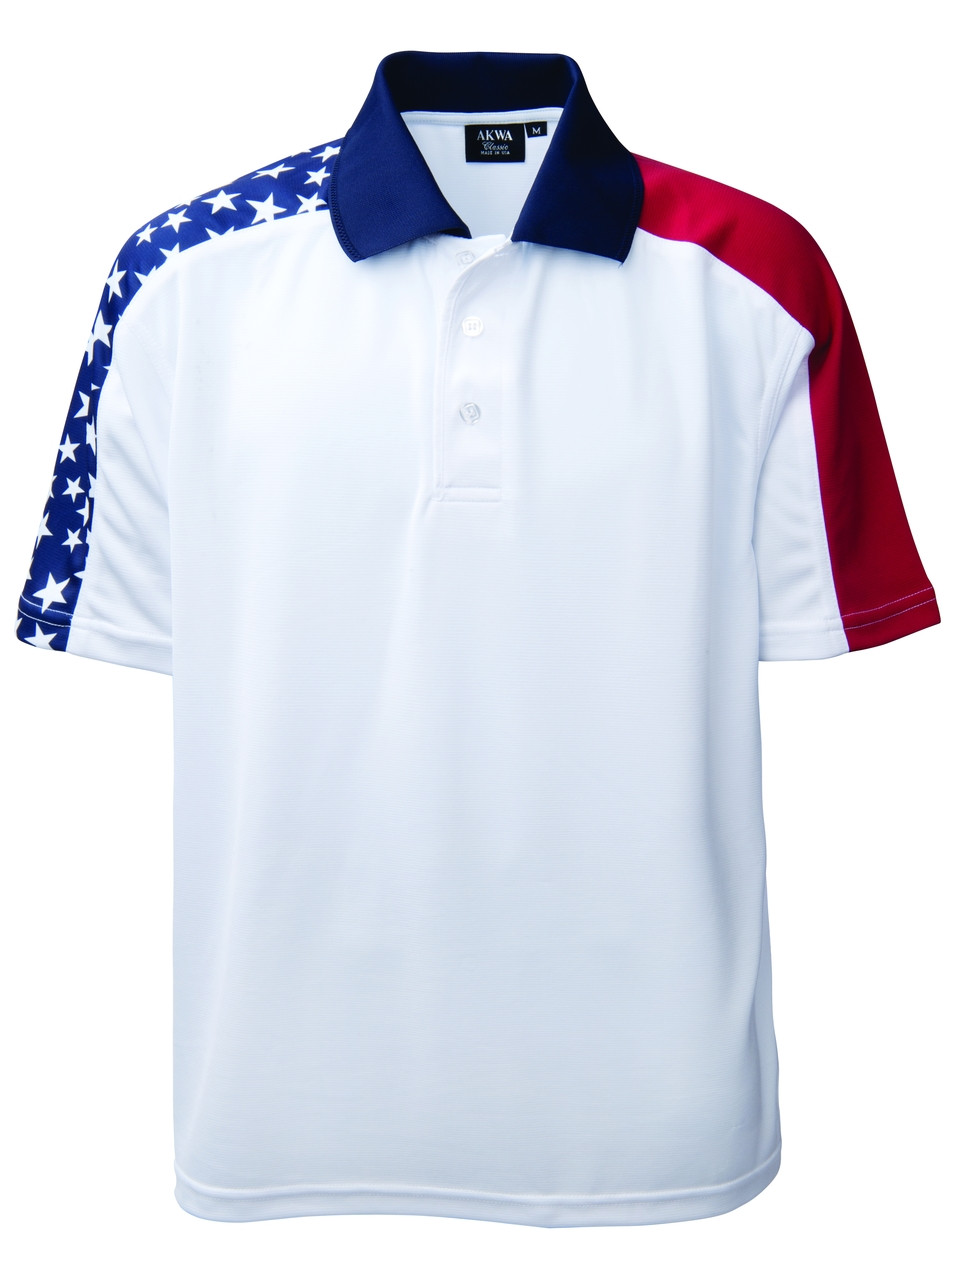 Fabric - 5.0 oz 100% Moisture Wicking Polyester. Sizes - XS-4XL Colors - Patriotic, flag colors(as shown) Features - Lightweight, comfortable dry wicking poly. - Stars and red shoulder panel are sublimated poly, so wont fade. - Perfect for any political gathering. - Perfect for any patriotic event or occasion